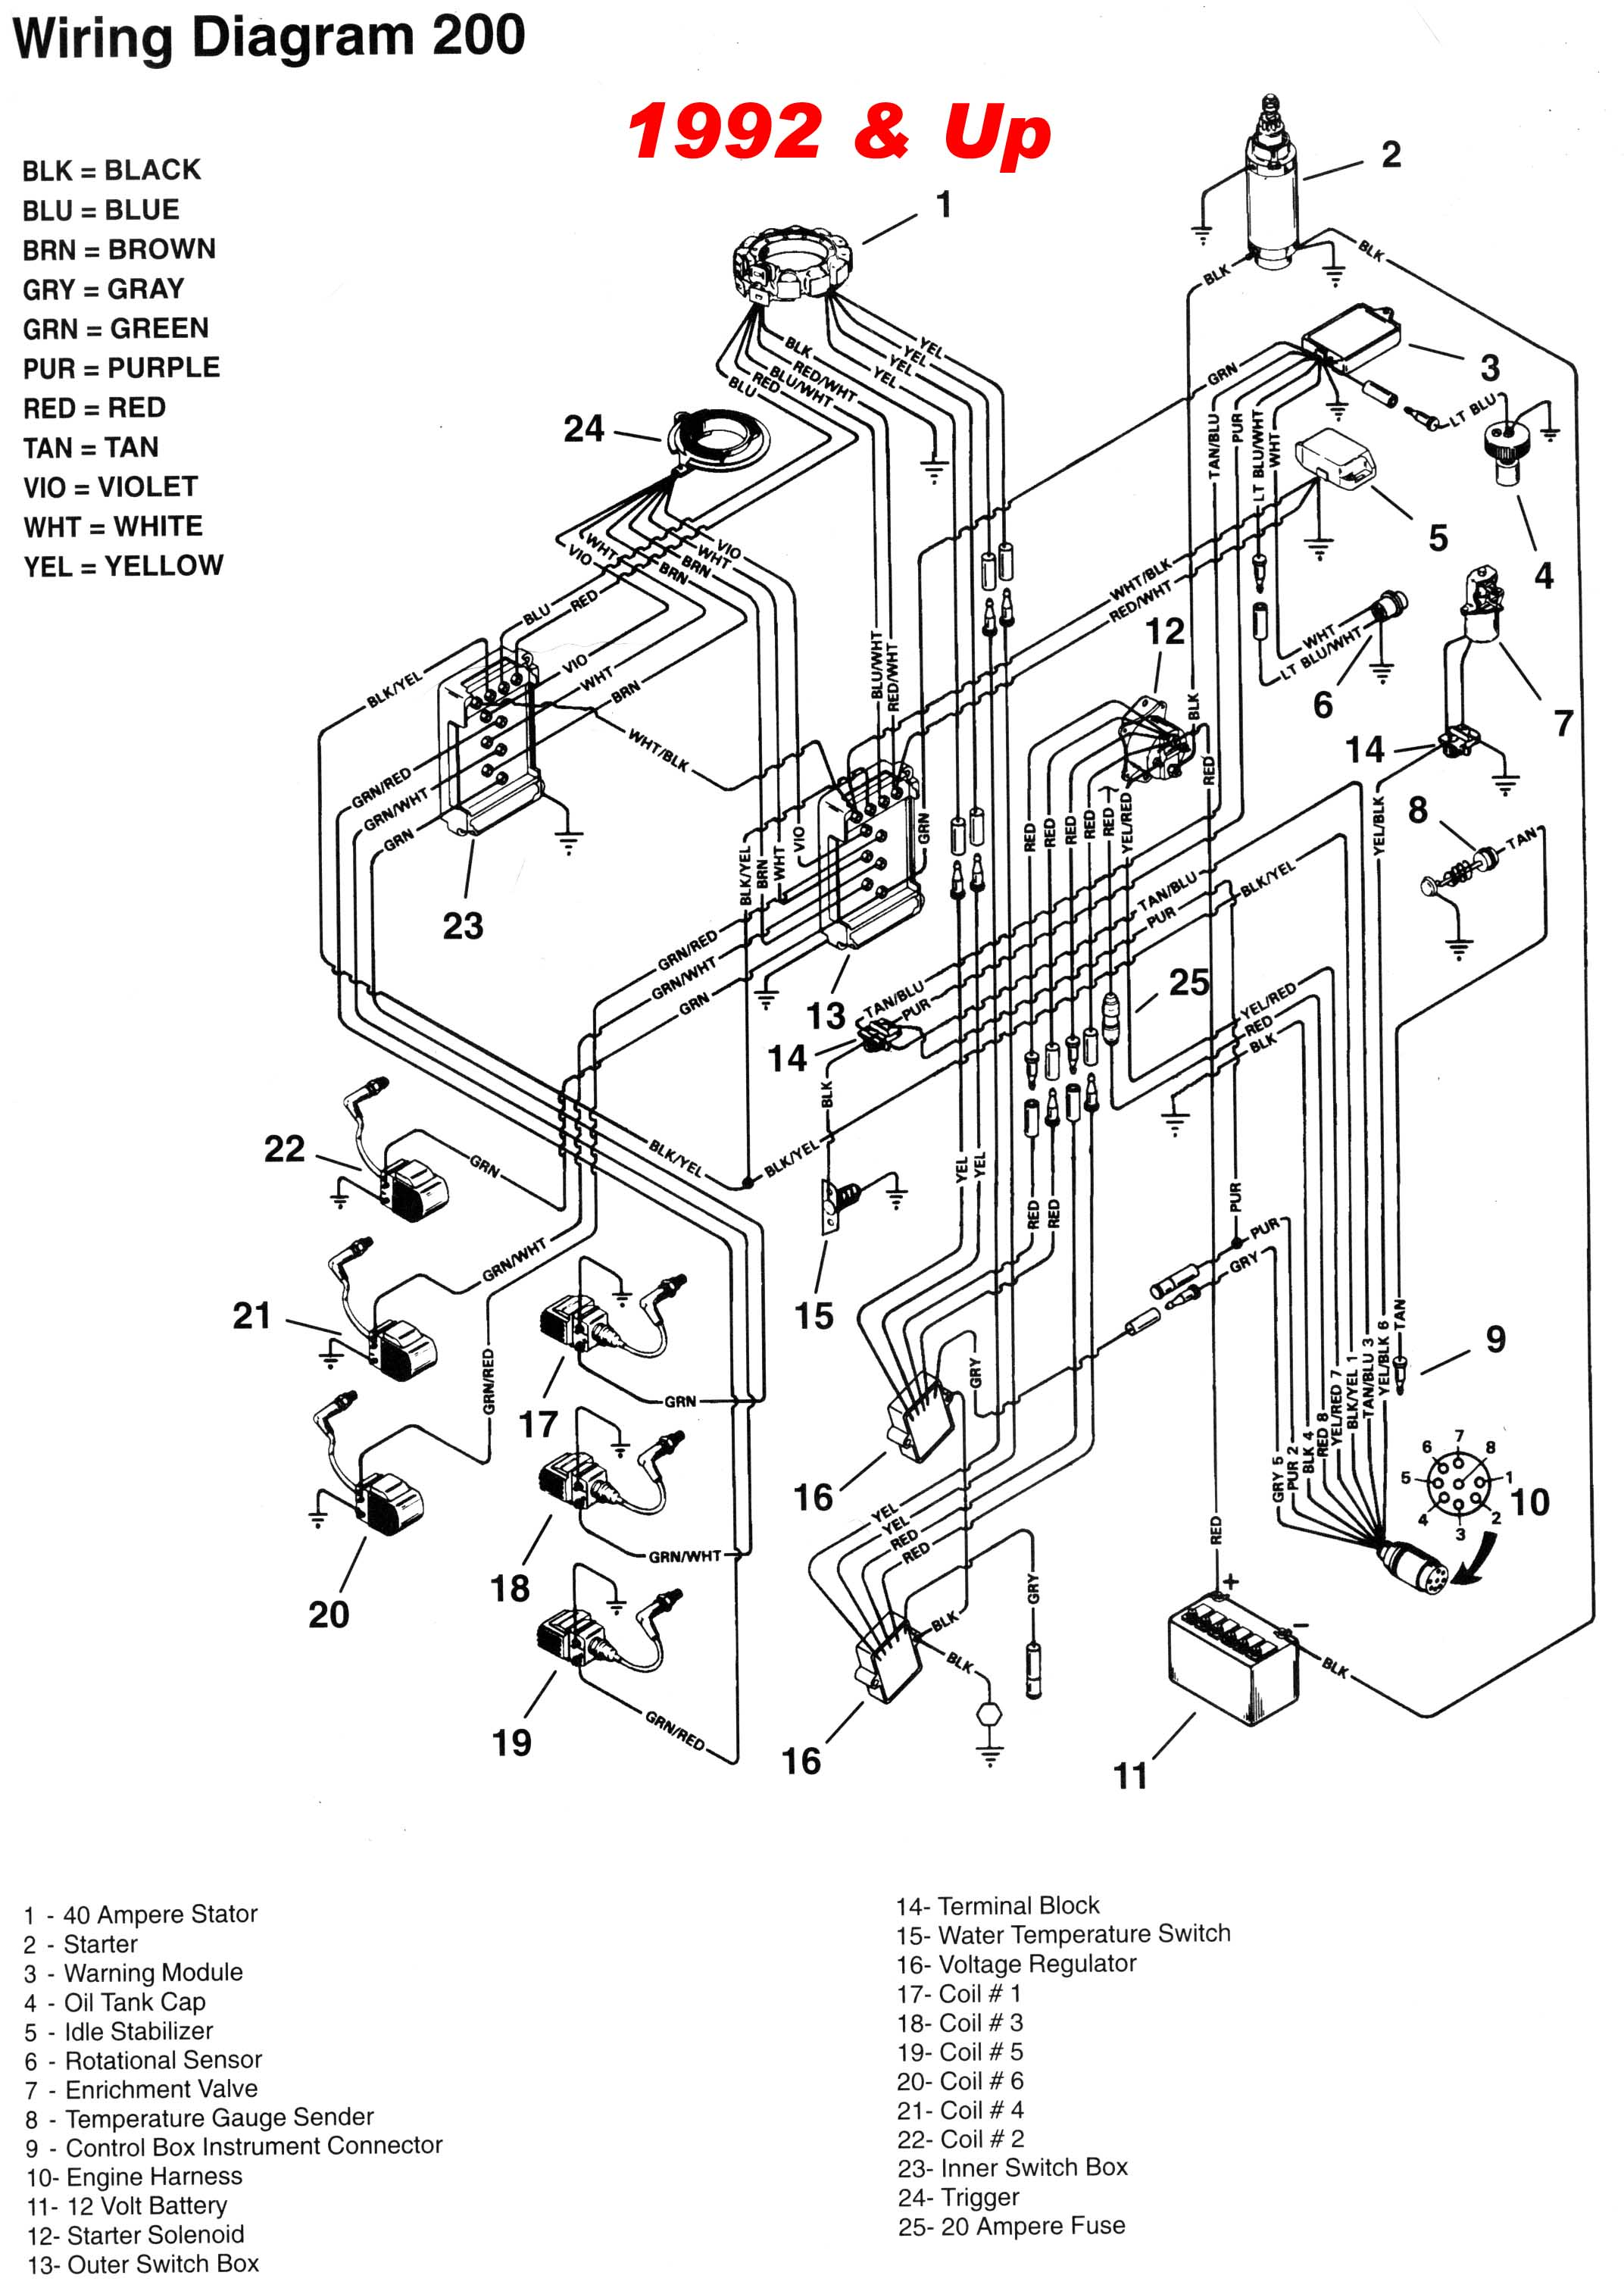 mercury optimax wiring diagram wiring library diagram h7 rh 11 mbgz tpk diningroom de  mercury 225 optimax wiring diagram